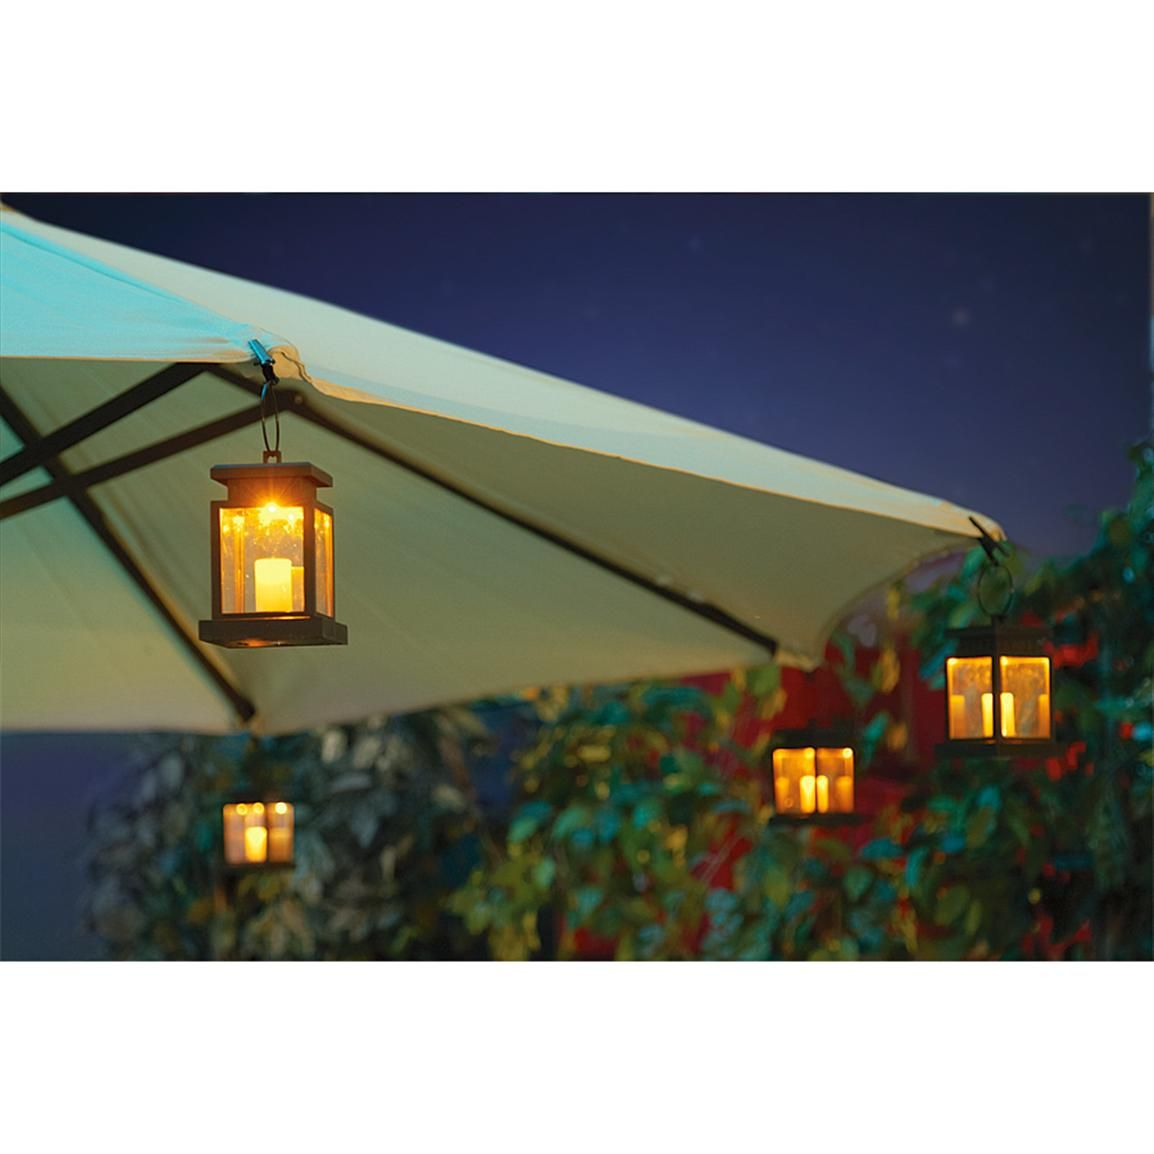 Solar Patio Umbrella Clip Lights   219378, Solar U0026 Outdoor Lighting At  Sportsmanu0027s Guide